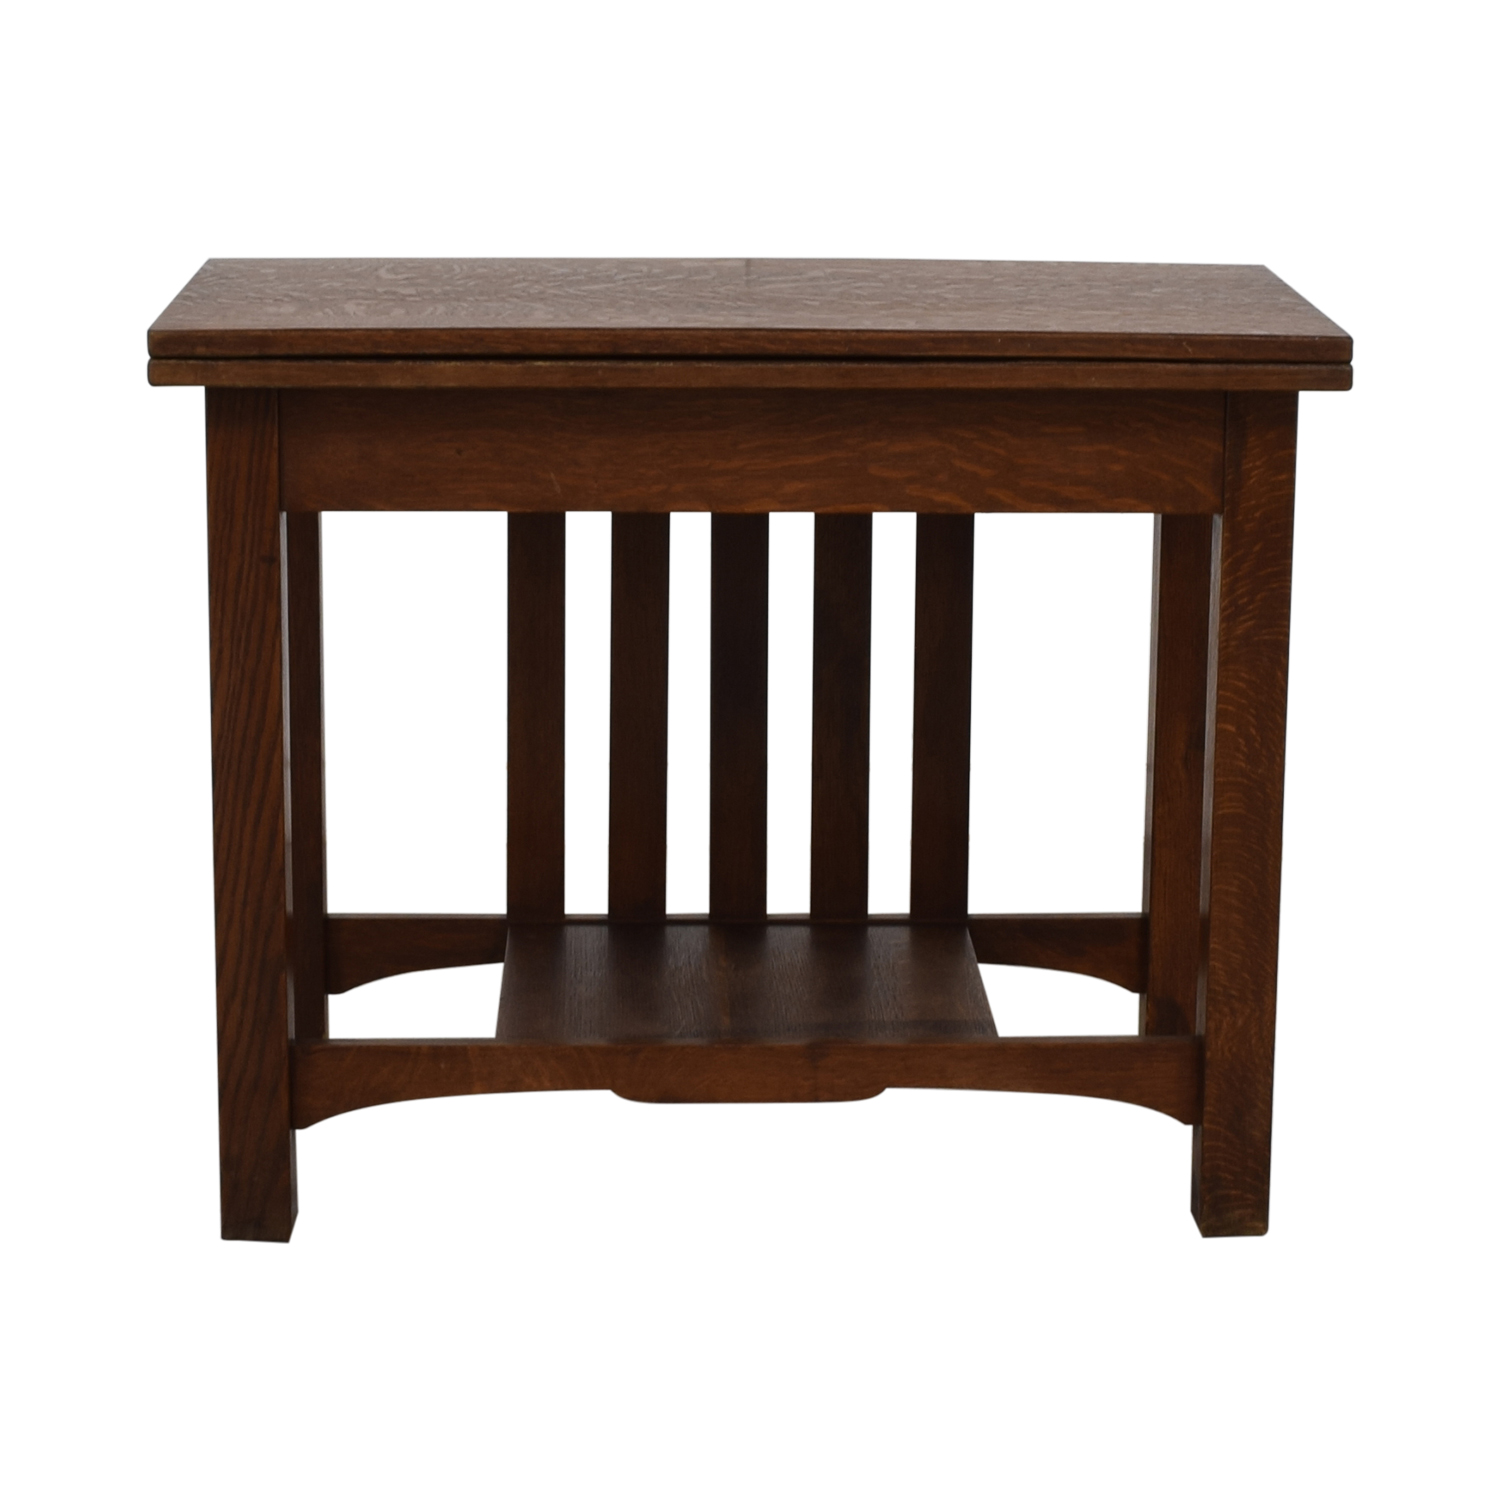 73 Off Stickley Furniture Stickley Game Table Tables